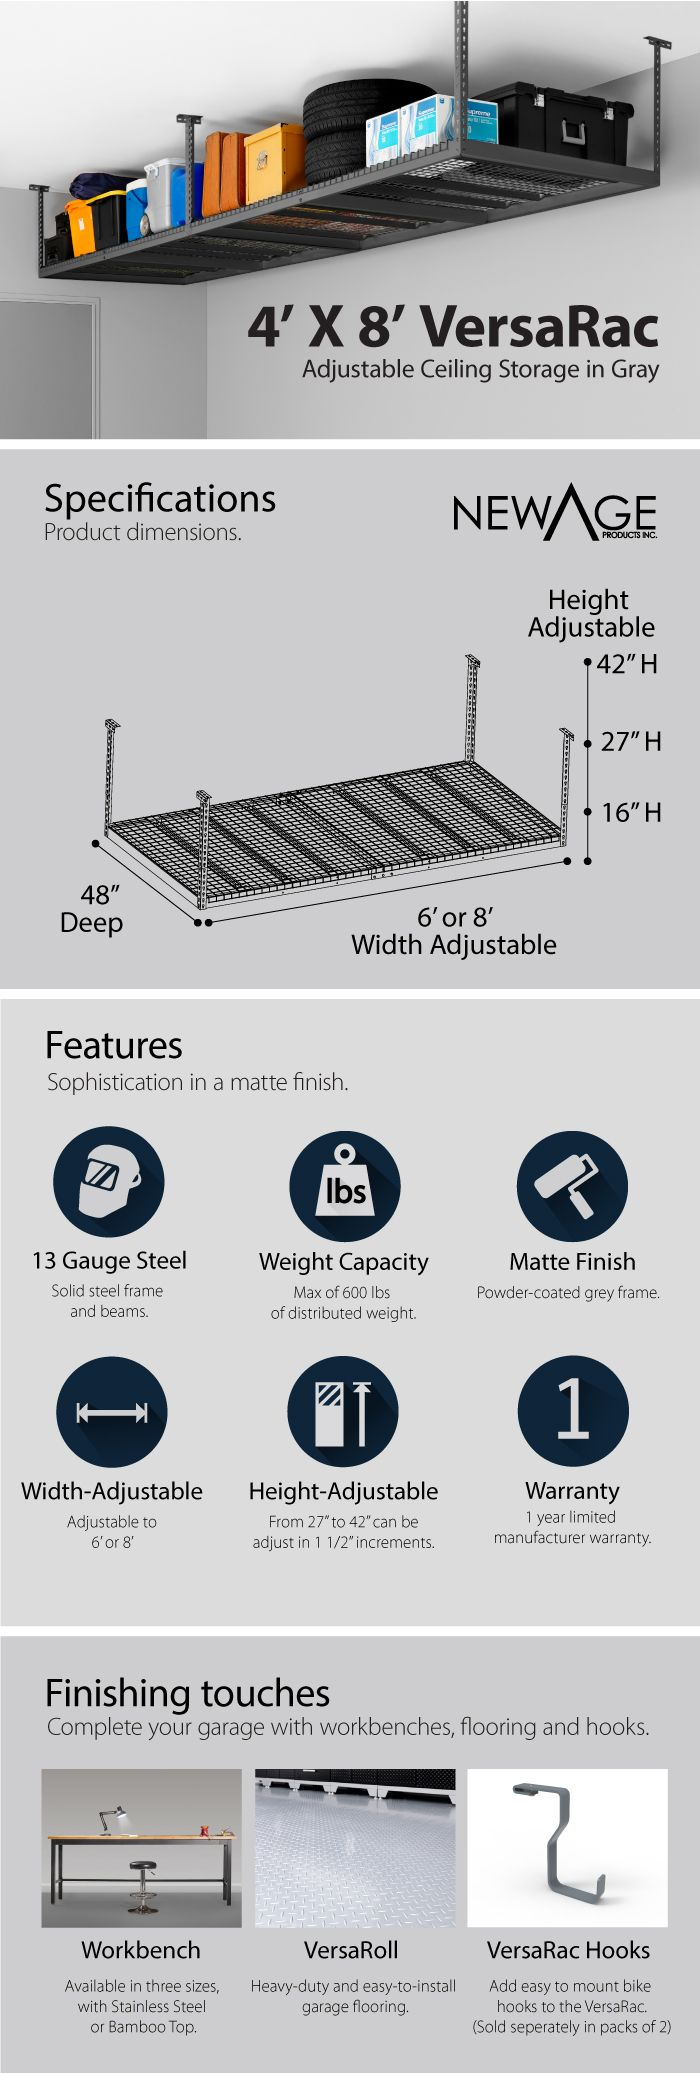 NewAge Products Performance 96 in. L x 48 in. W x 45 in. H Adjustable VersaRac Ceiling Storage Rack in Gray-40151 - The Home Depot.  Tip: Pick up 8 Spax lag bolts.